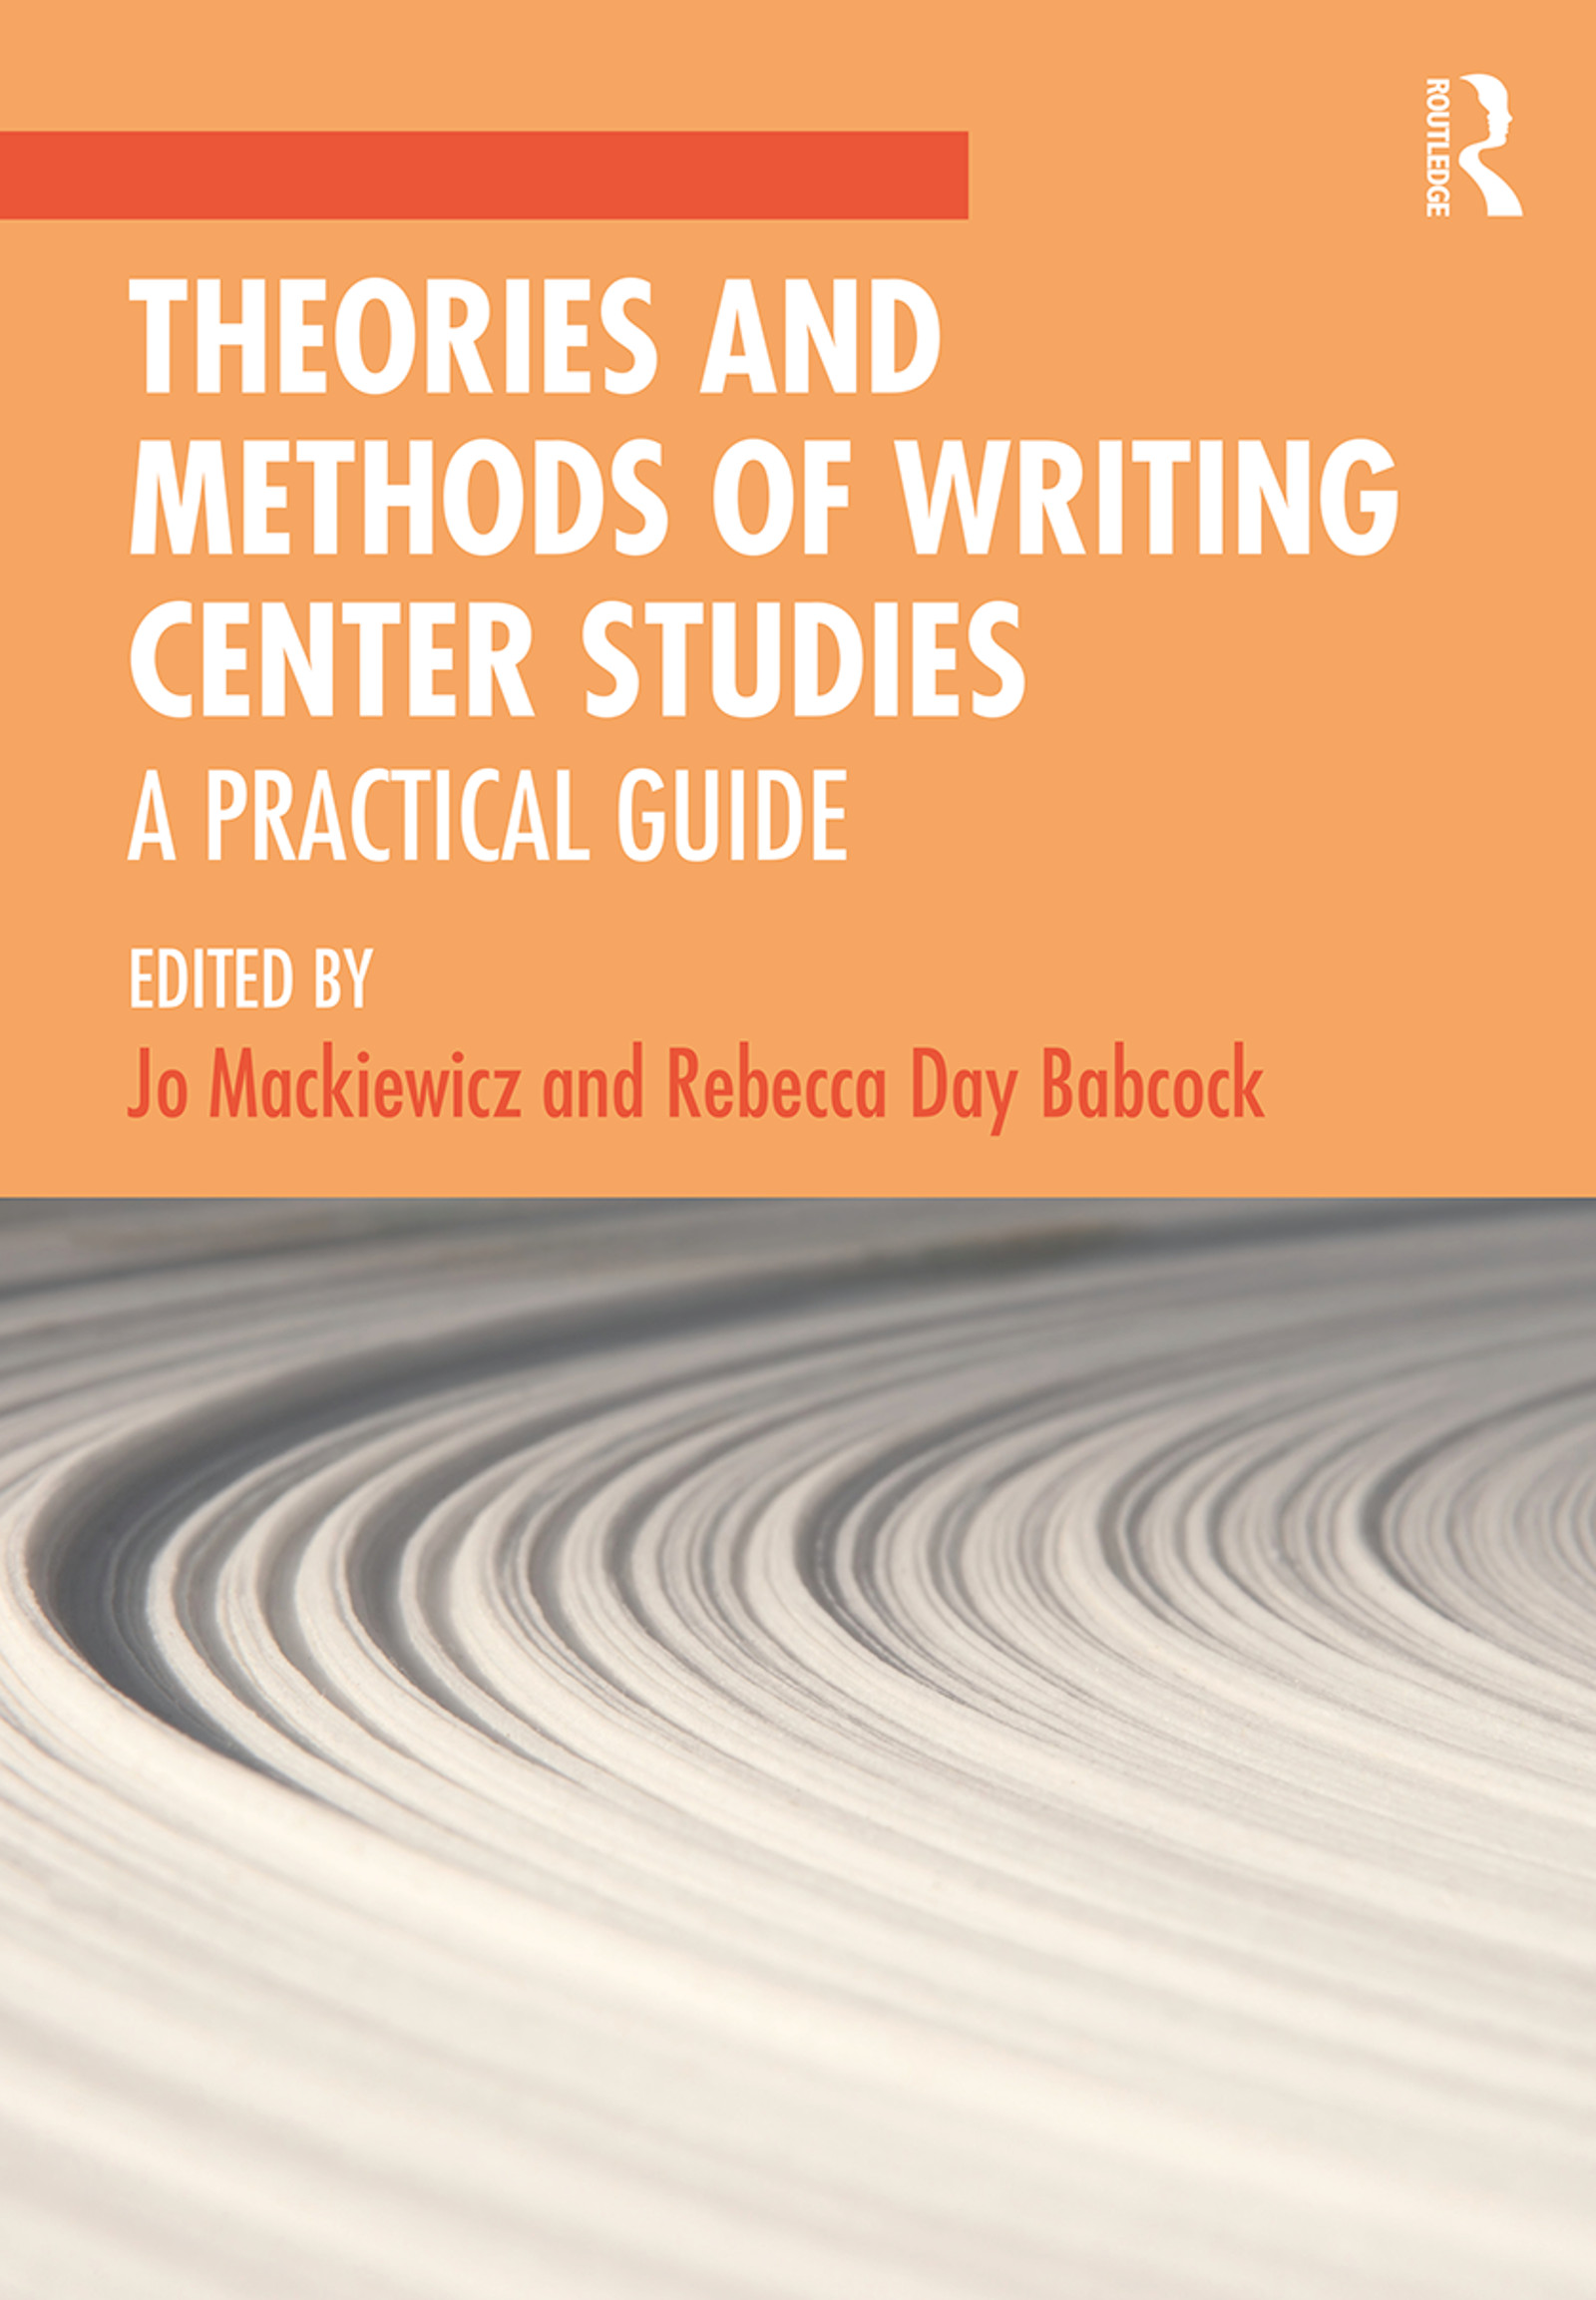 Theories and Methods of Writing Center Studies: A Practice Guide book cover